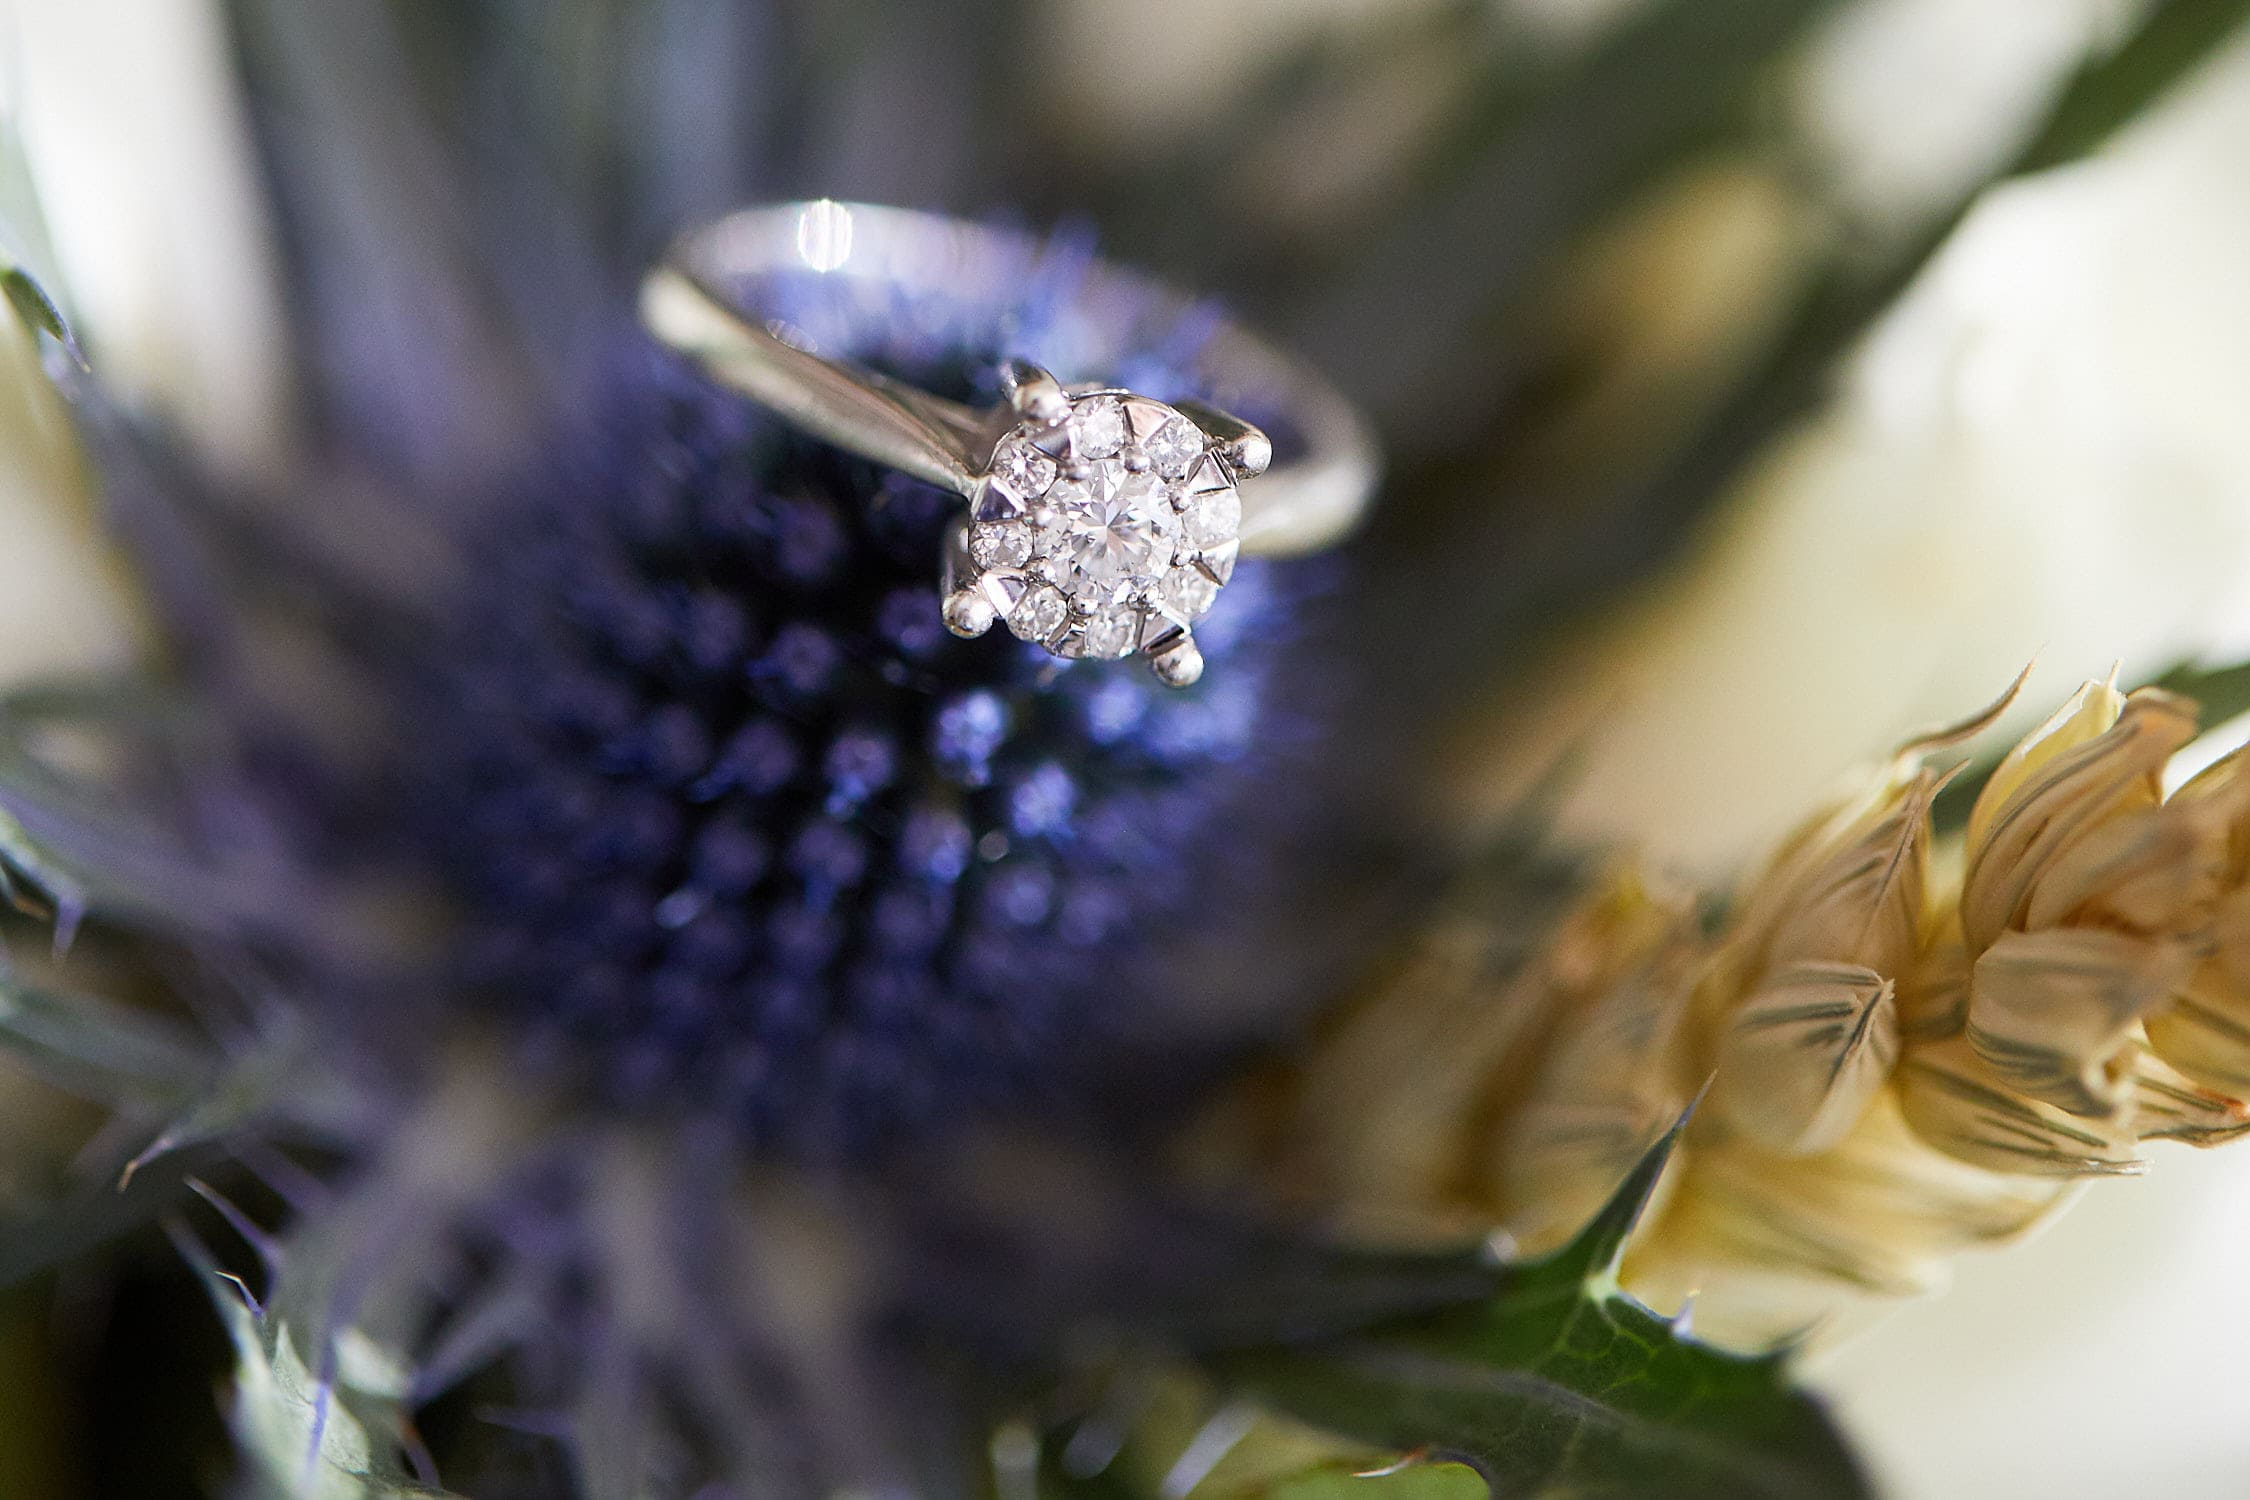 A diamond engagement ring placed amongst flowers